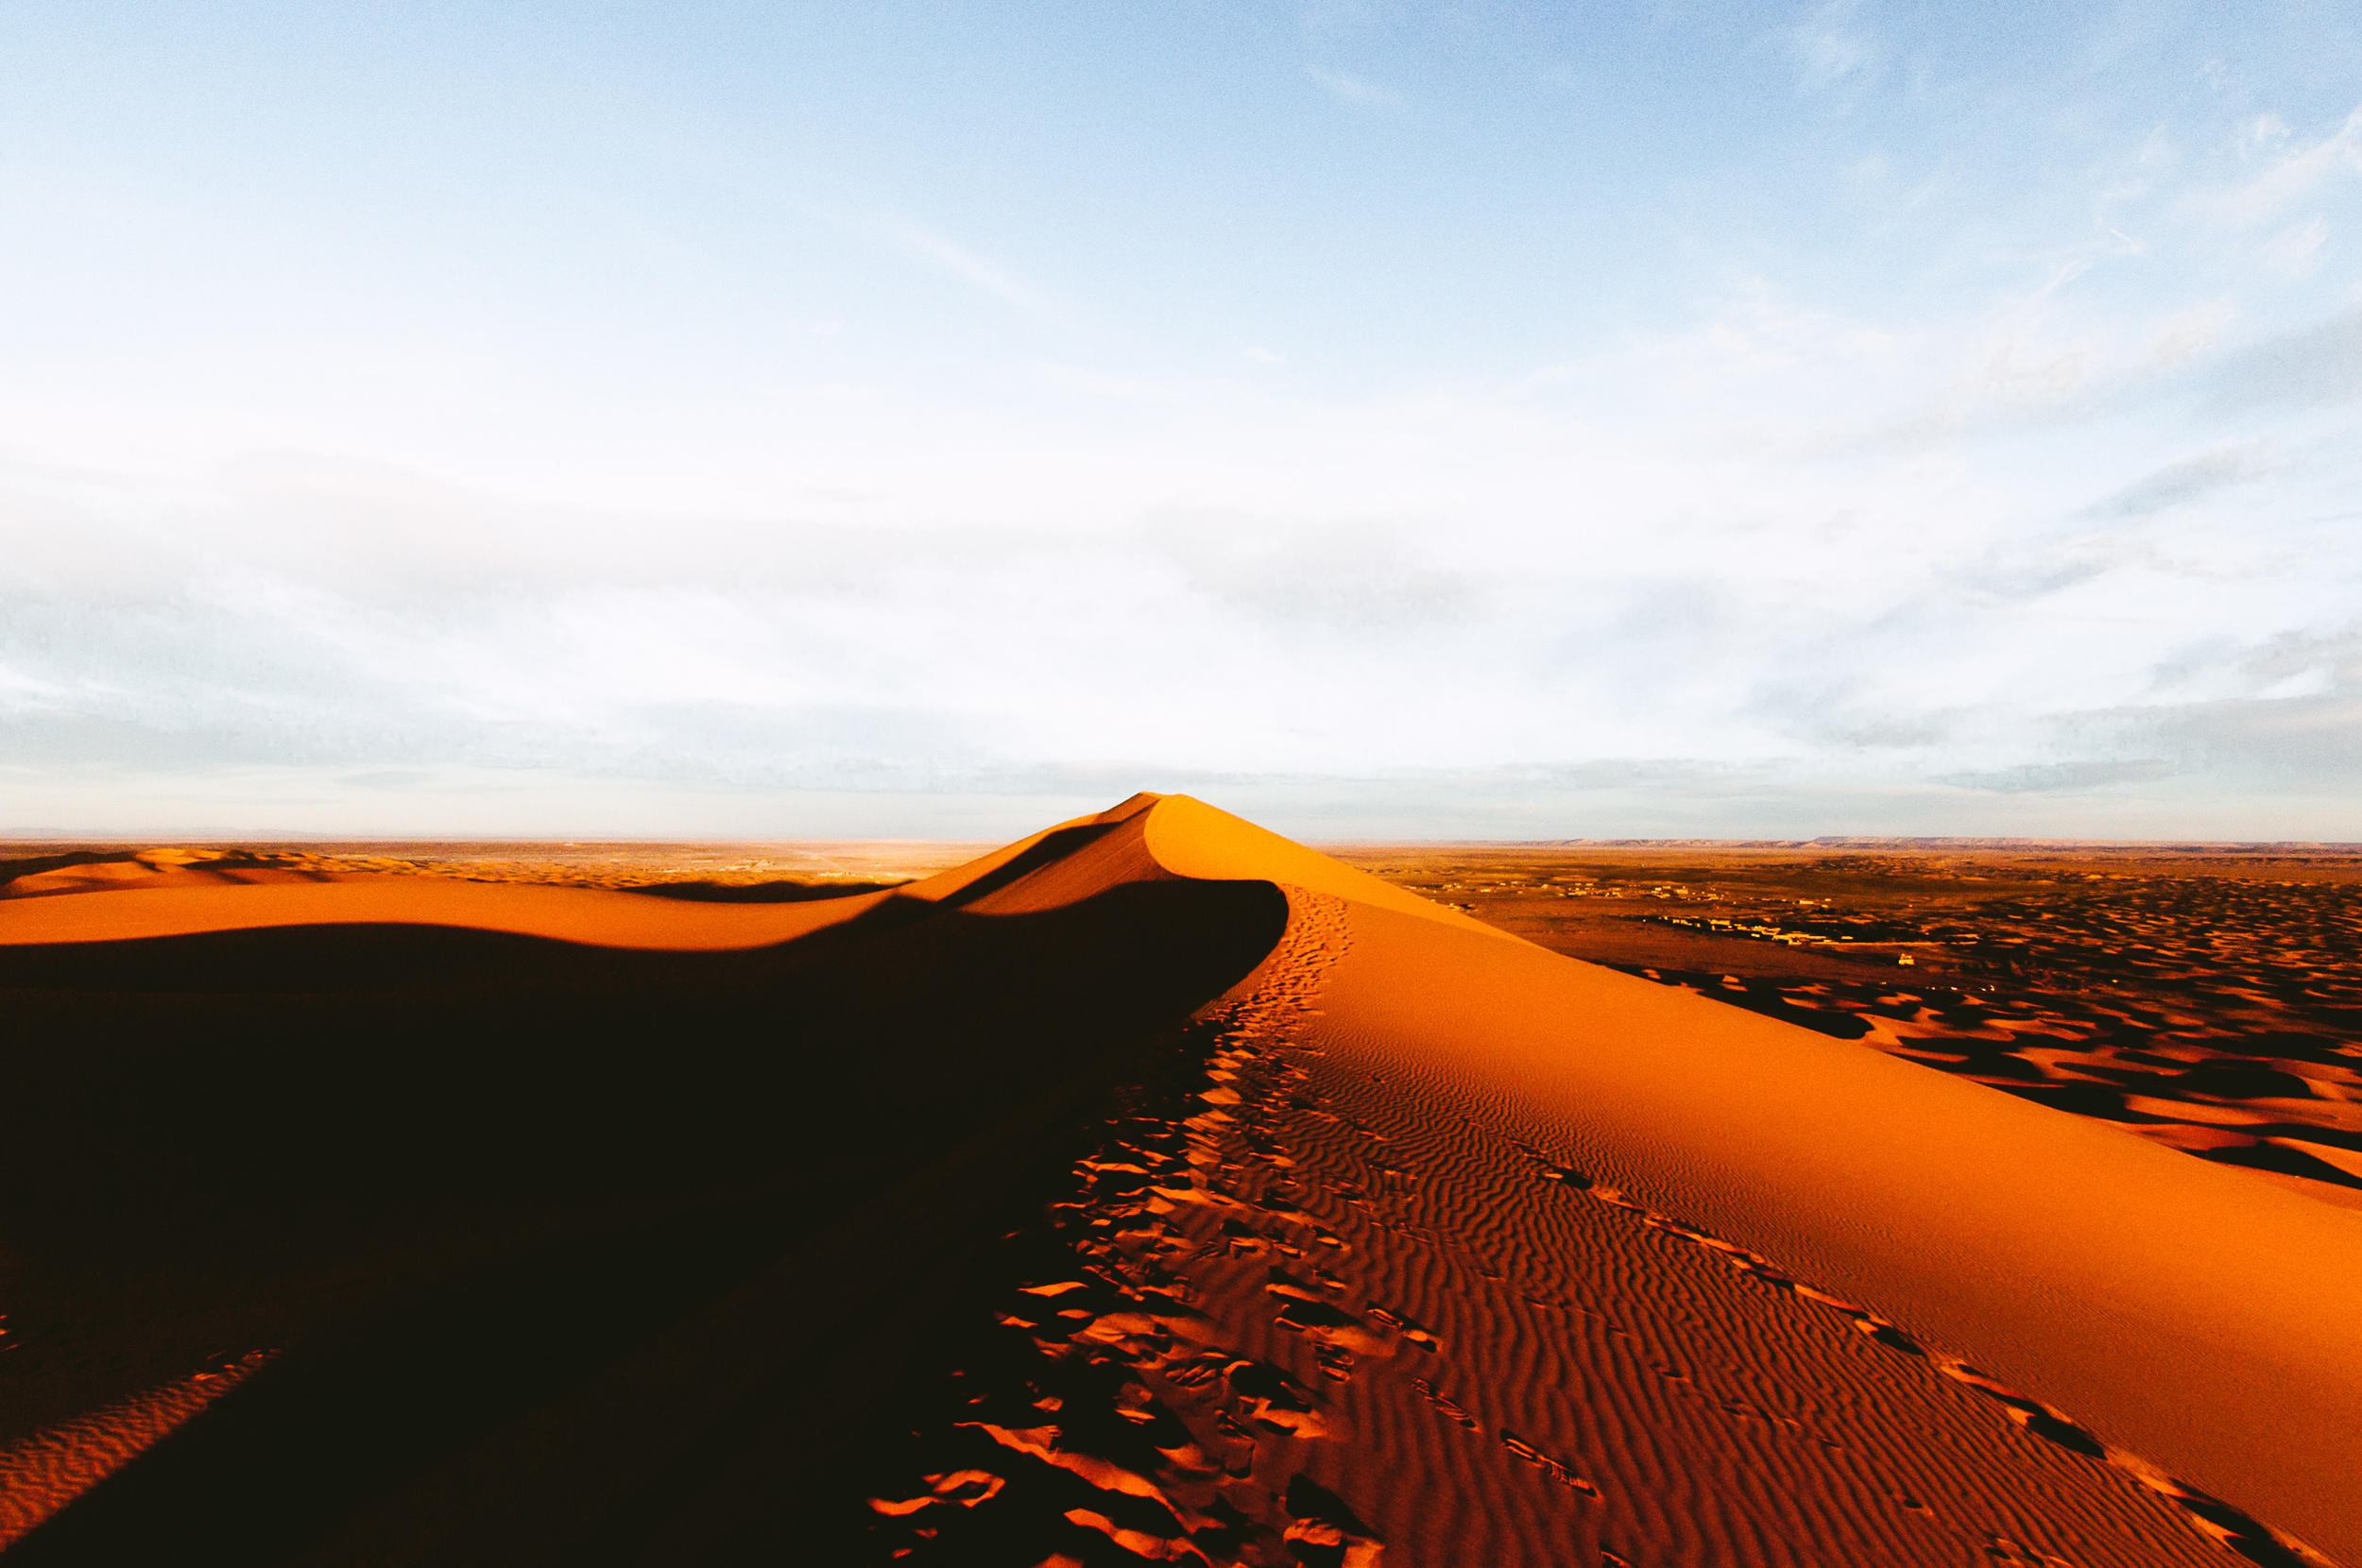 Epic view of the Sahara in the morning.